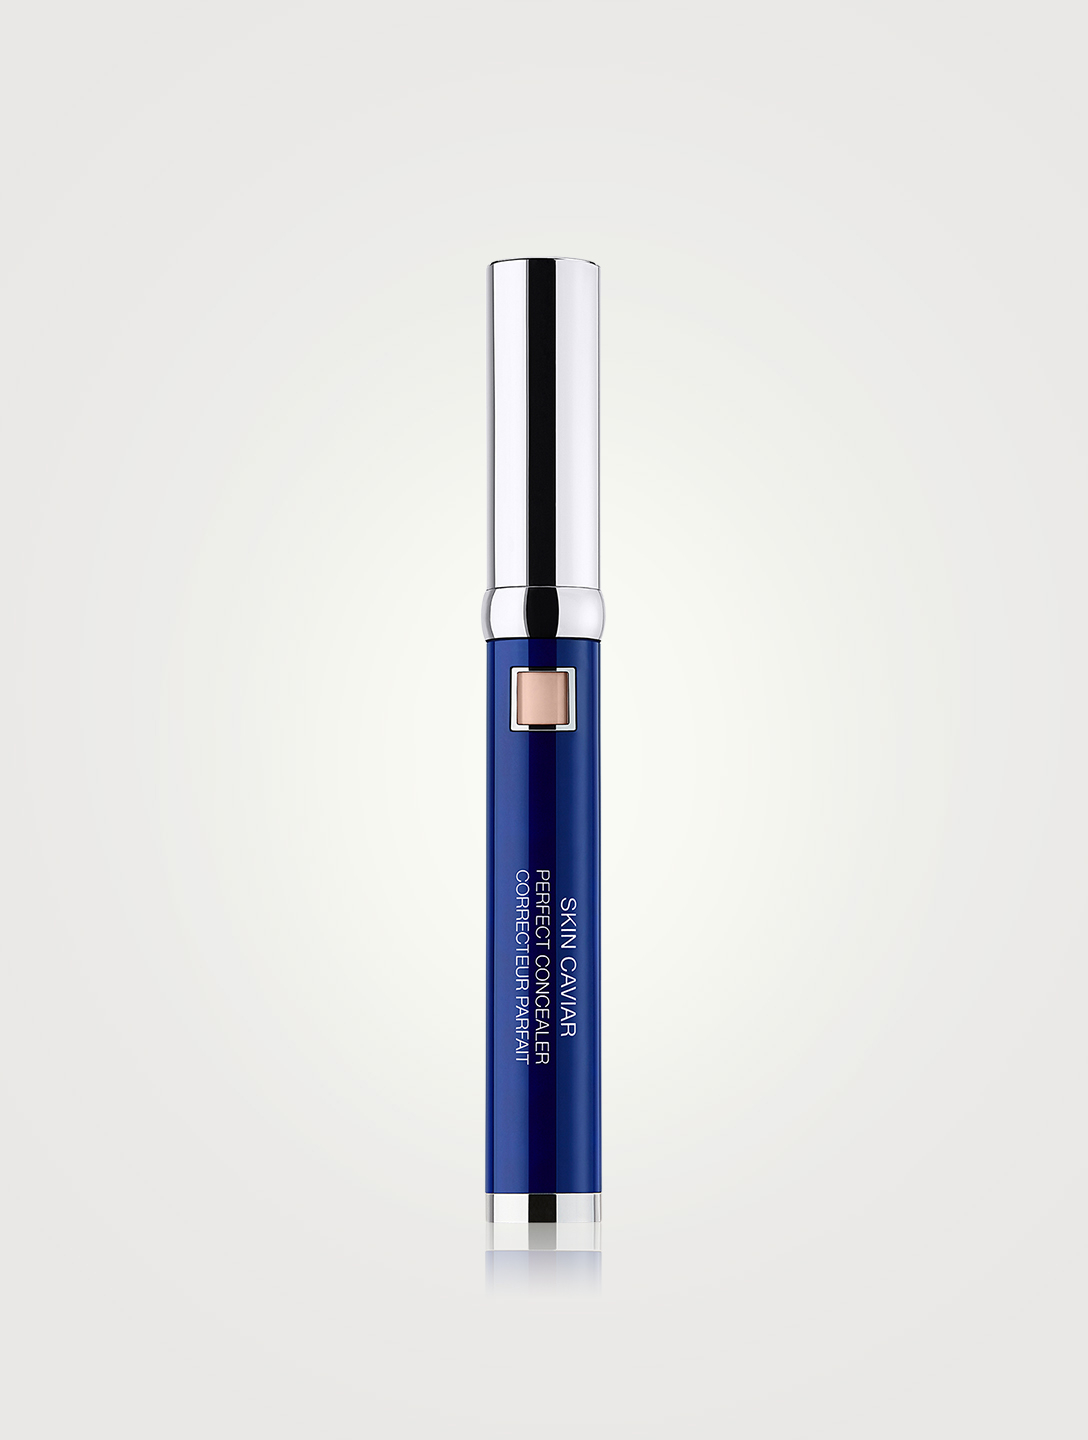 LA PRAIRIE Skin Caviar Perfect Concealer Beauty Neutral